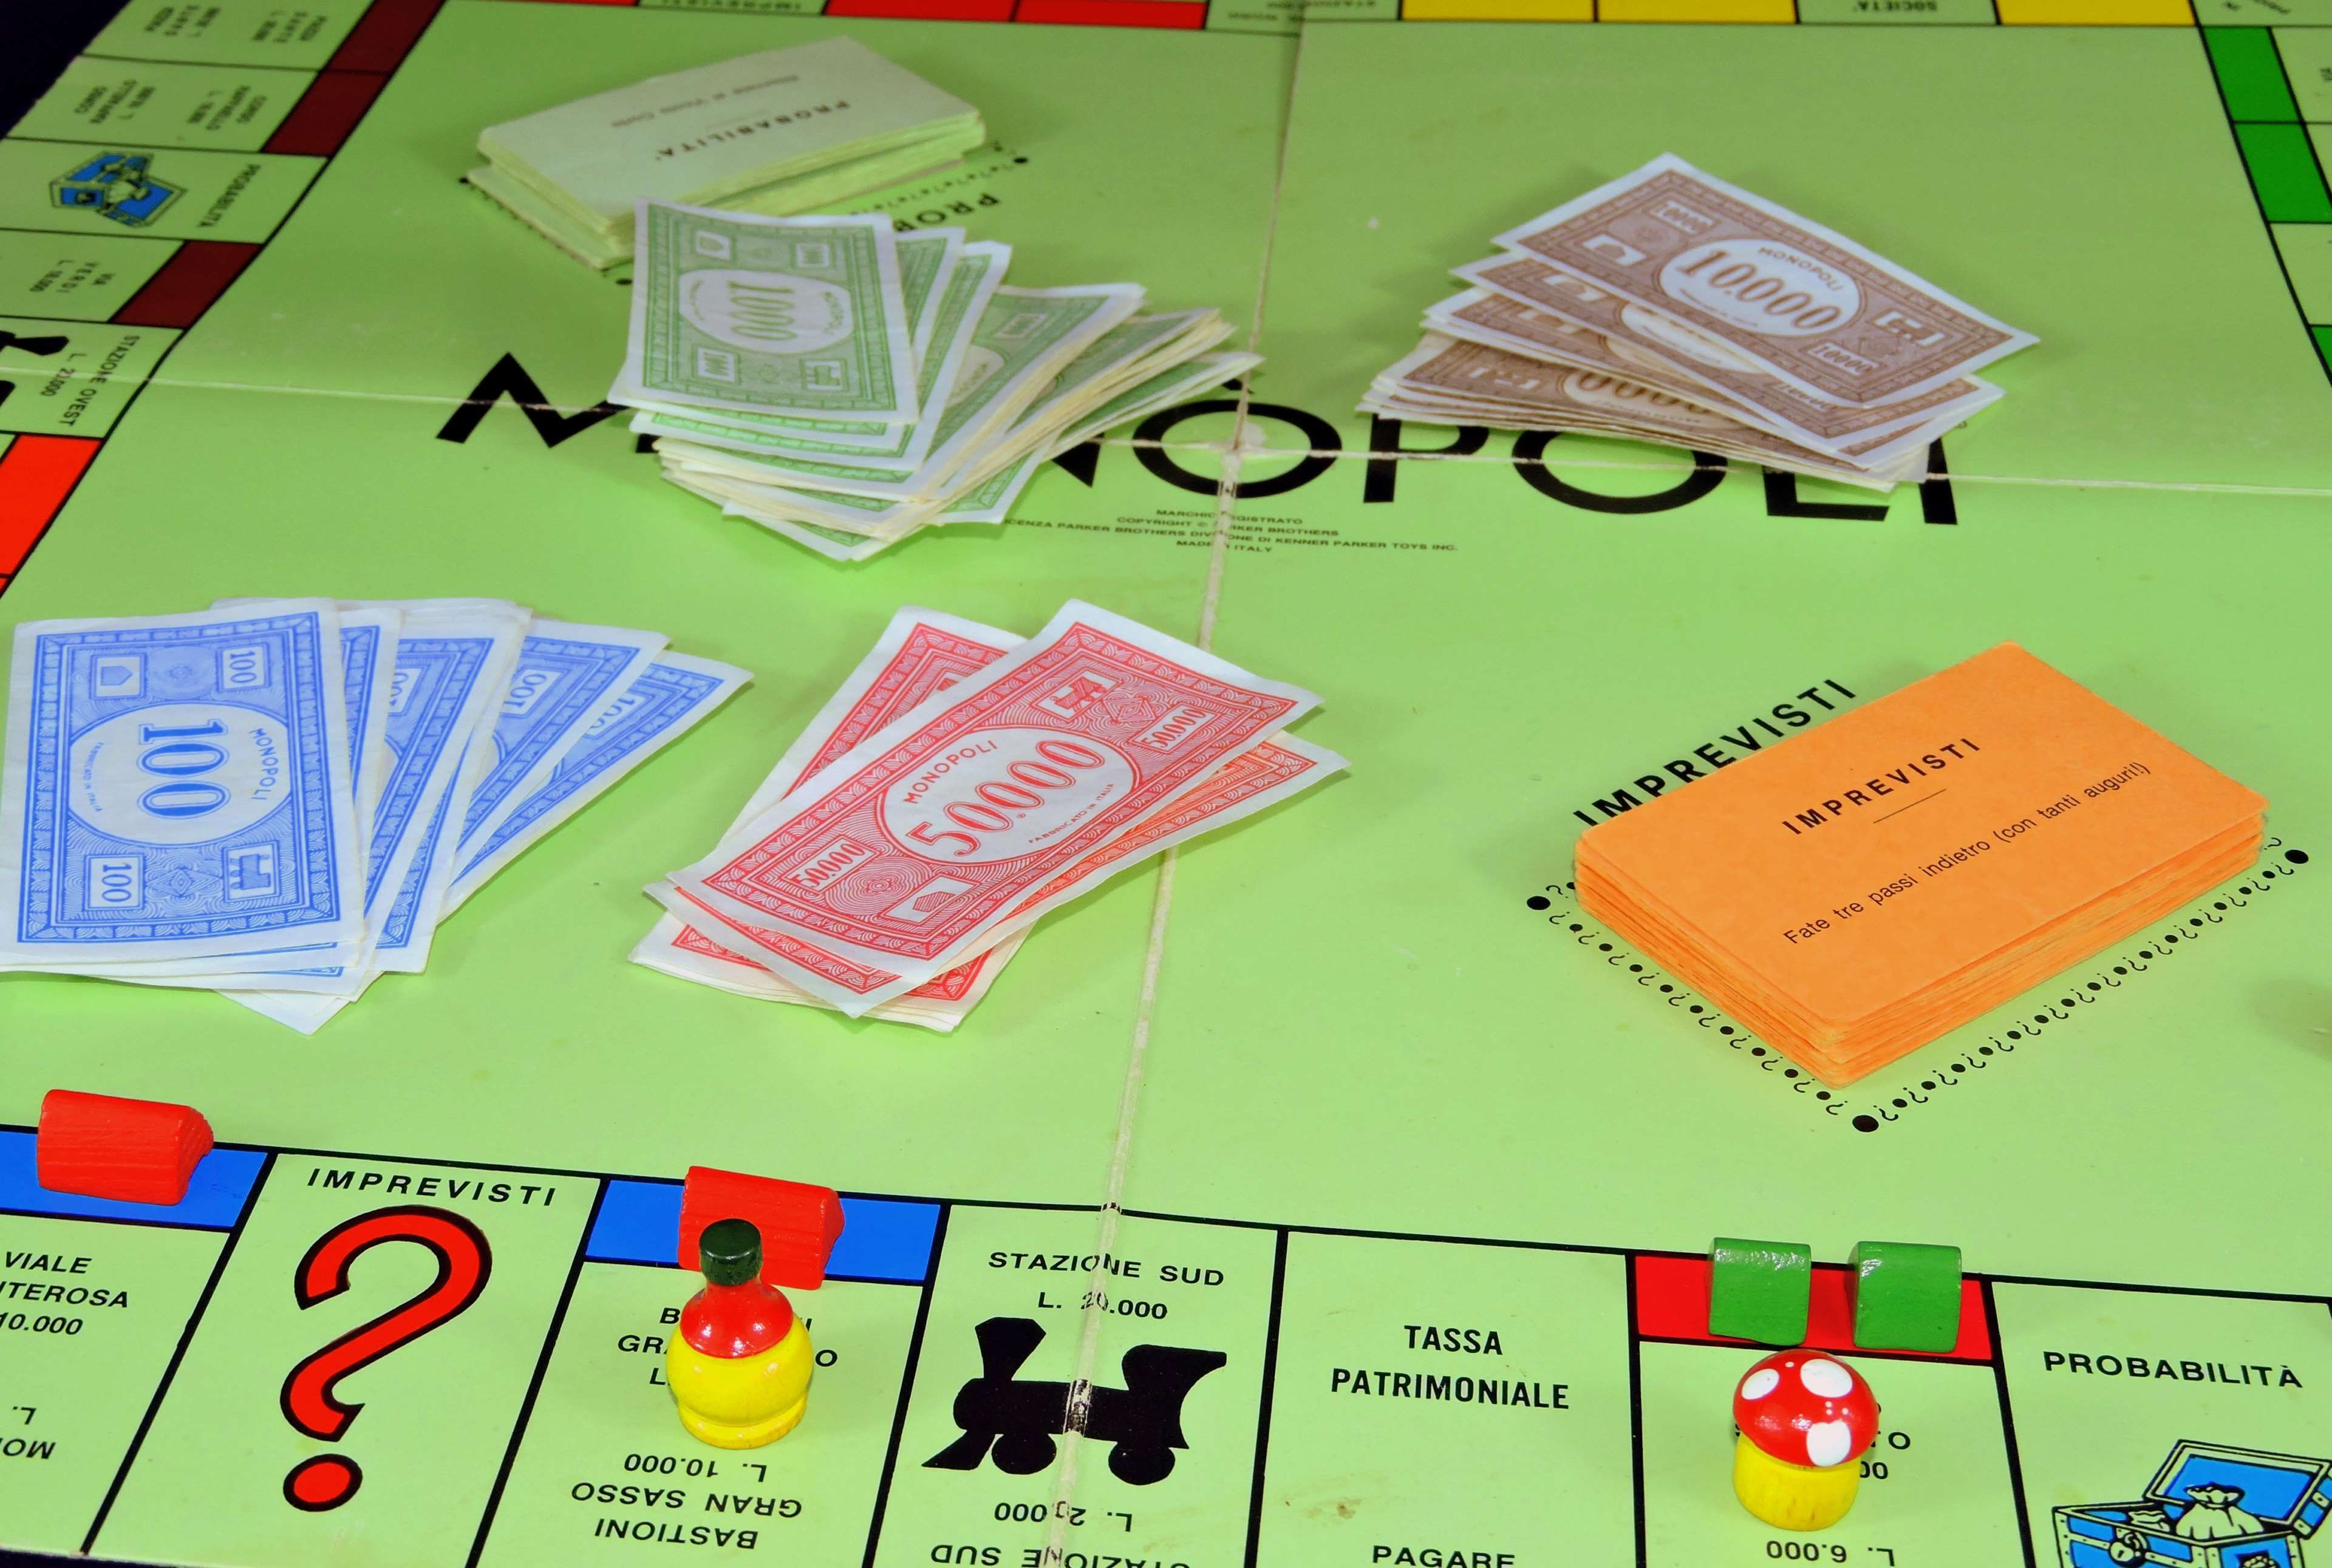 #board game #buildings #hotels #houses #money #monopoly #pastime #play #trade #unexpected